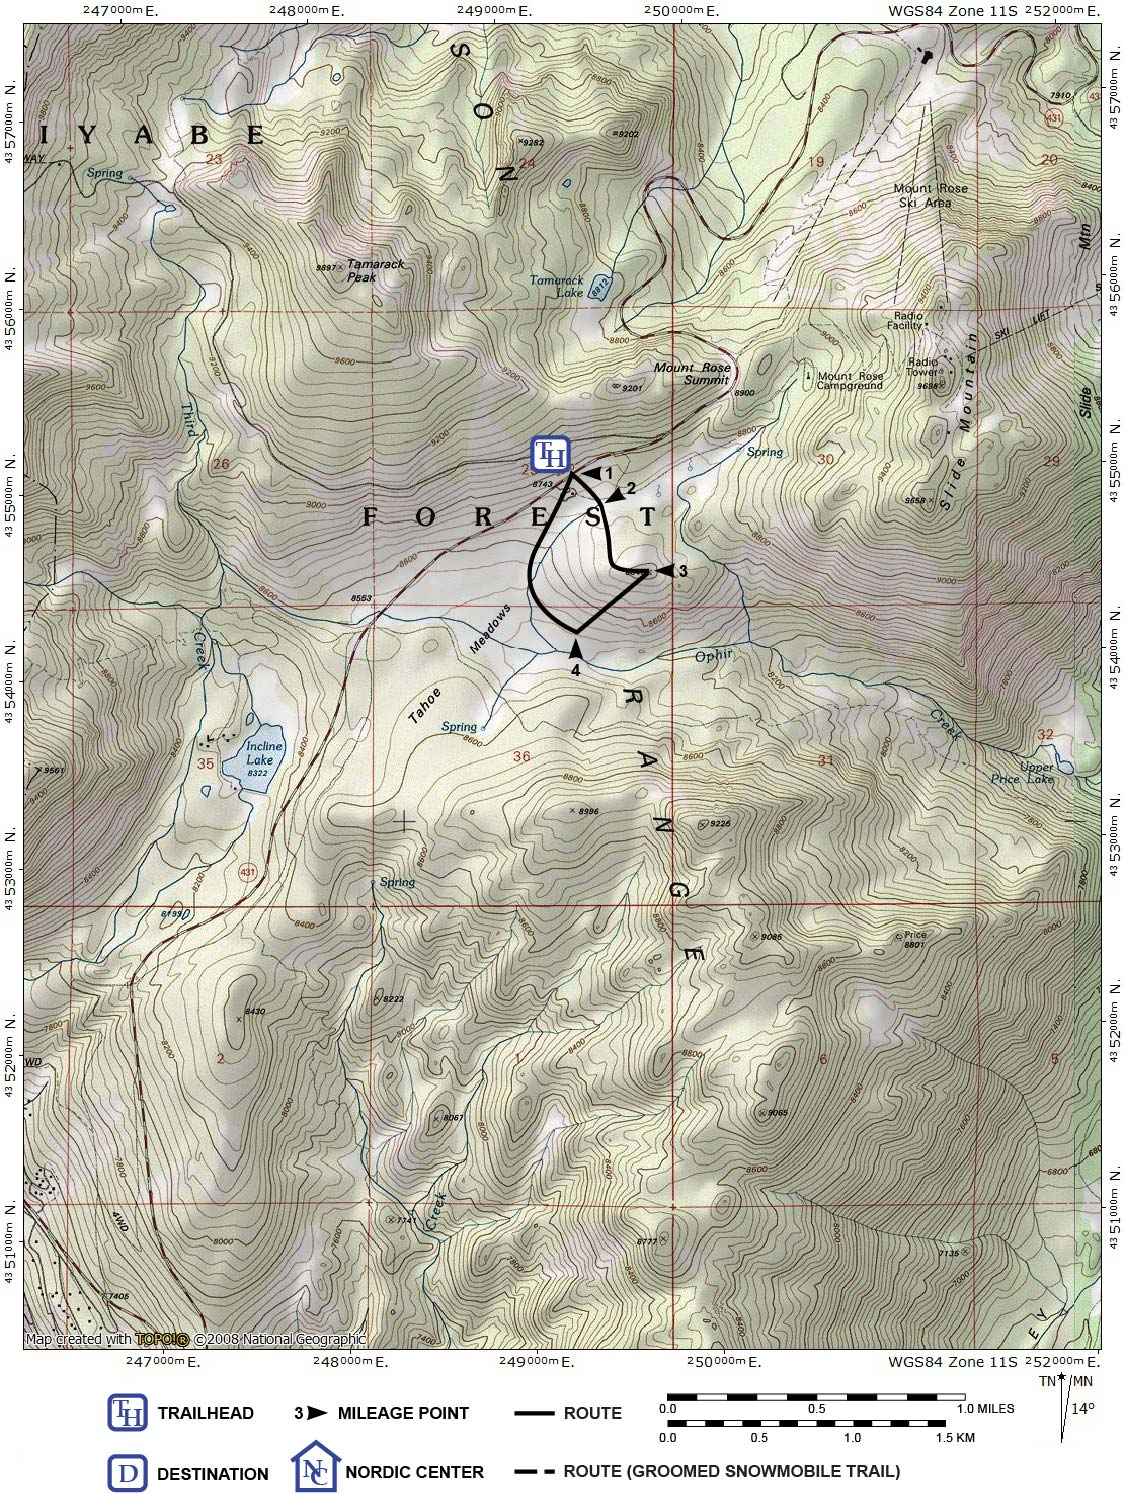 Full page map for ski tour